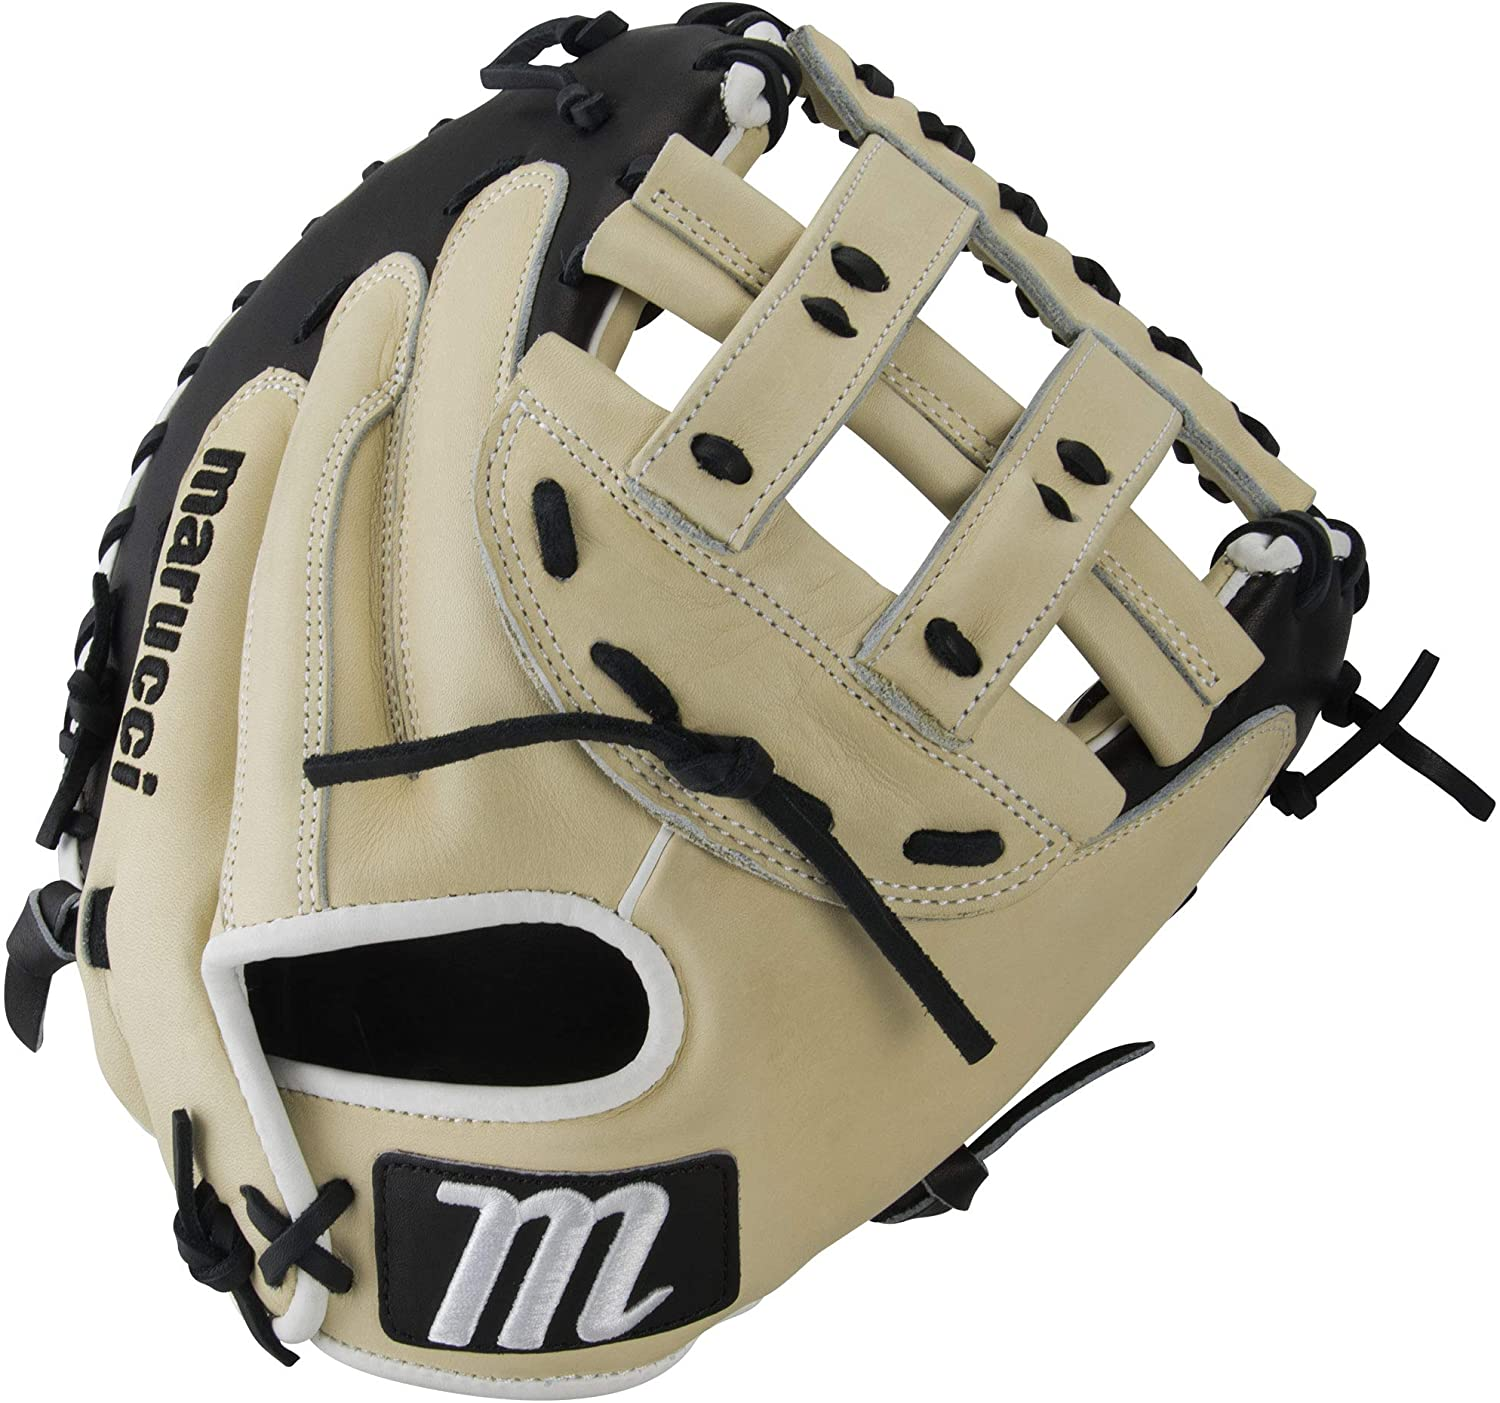 marucci-magnolia-series-mg2fp-34-softball-fast-pitch-catchers-mitt-h-web-right-hand-throw MFGMG2FP-CMBK-RightHandThrow Marucci  Premium Japanese-tanned steer hide leather provides stiffness and rugged durability Cushioned